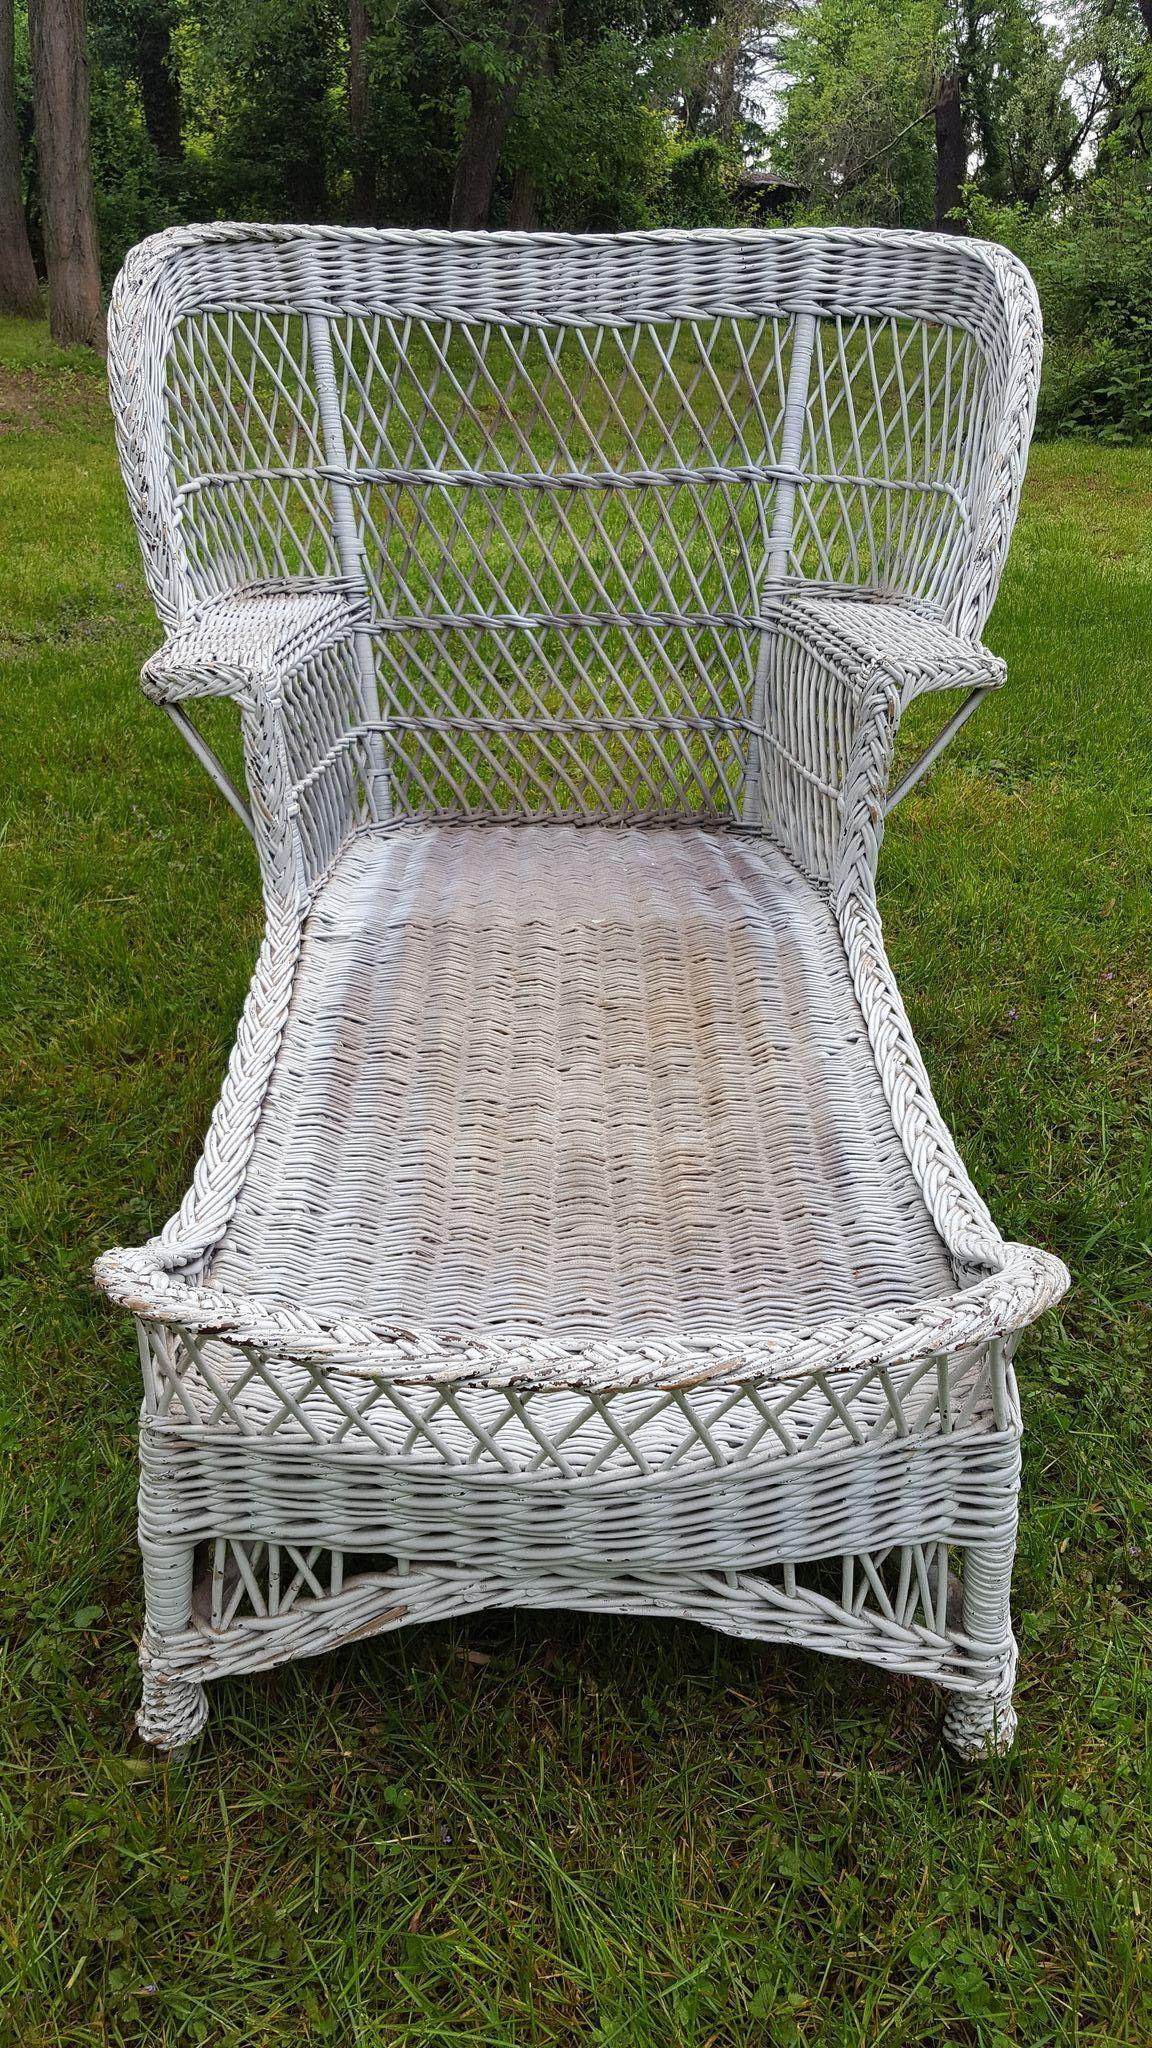 Very Rare Vintage Bar Harbor Wicker Wing Back Chaise Lounge Circa